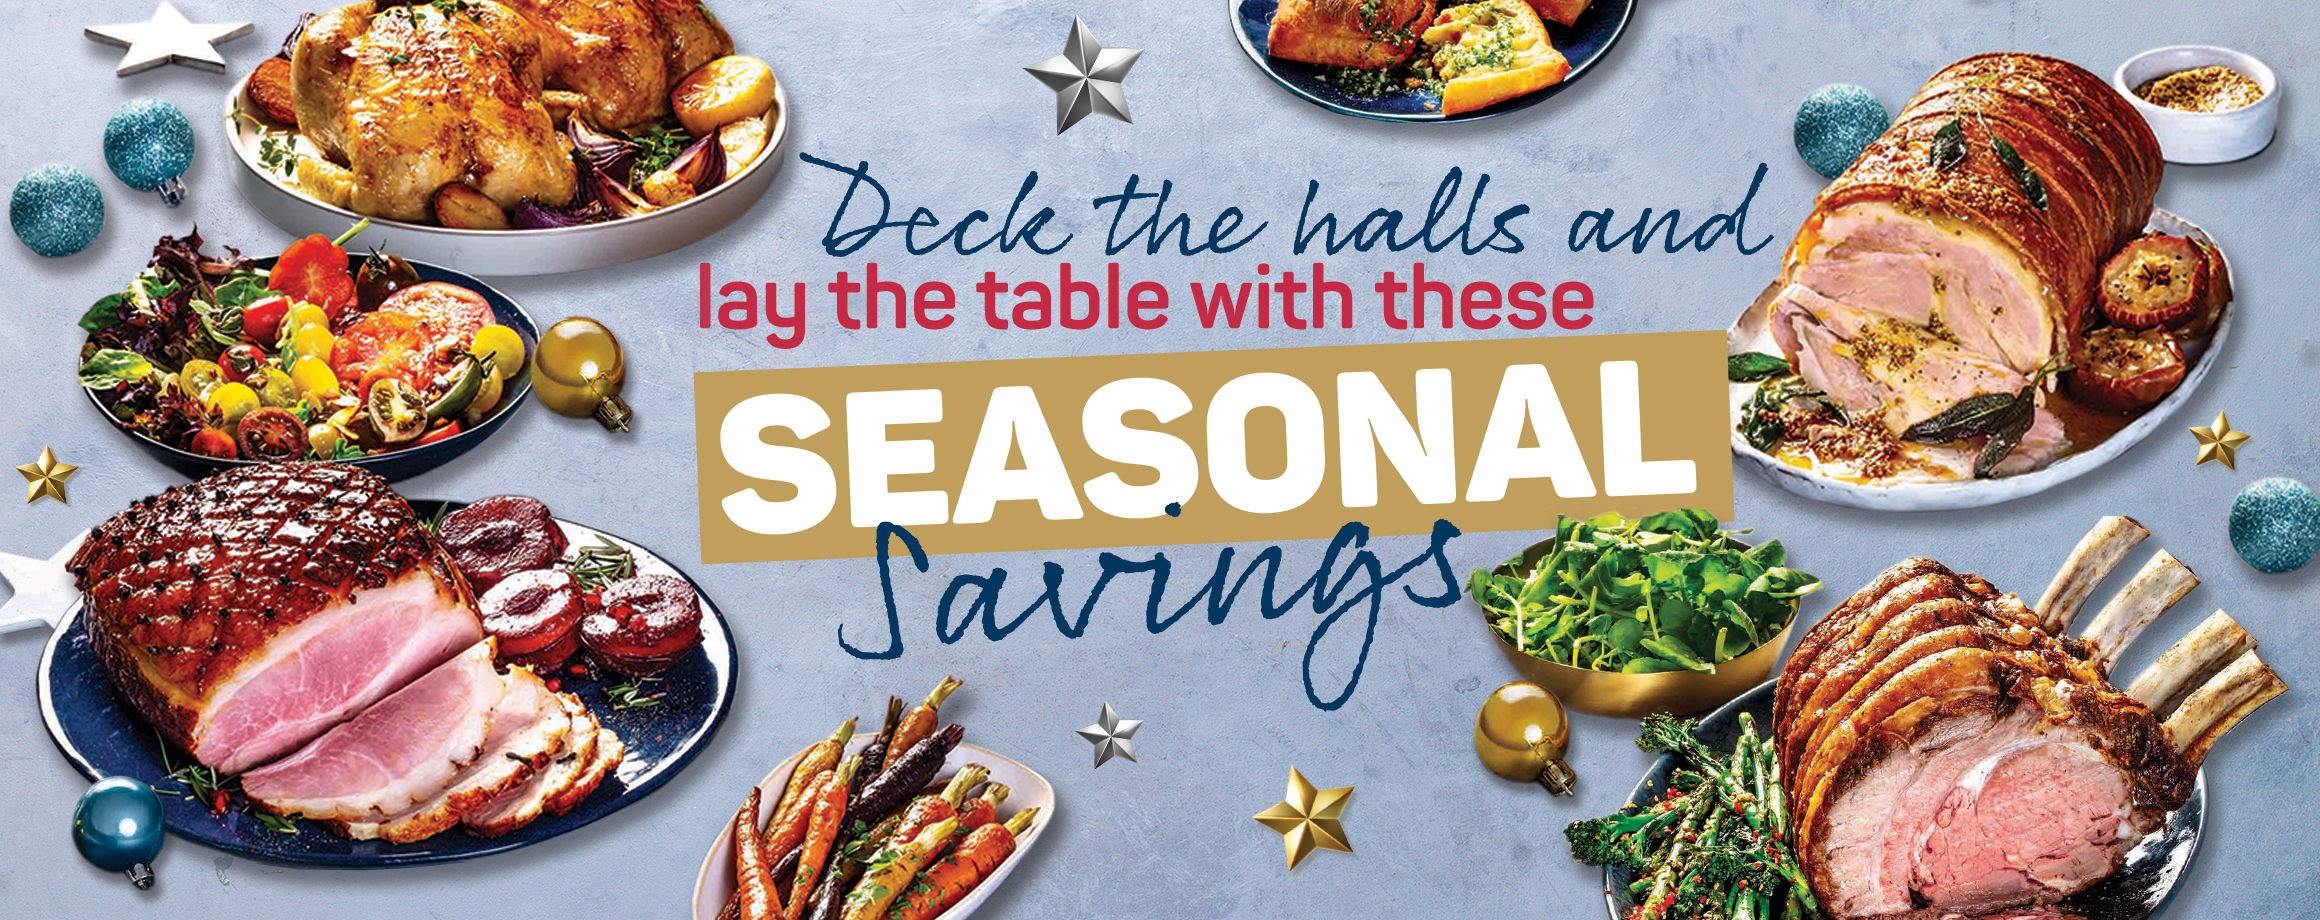 Deck the halls and lay the table with these seasonal savings